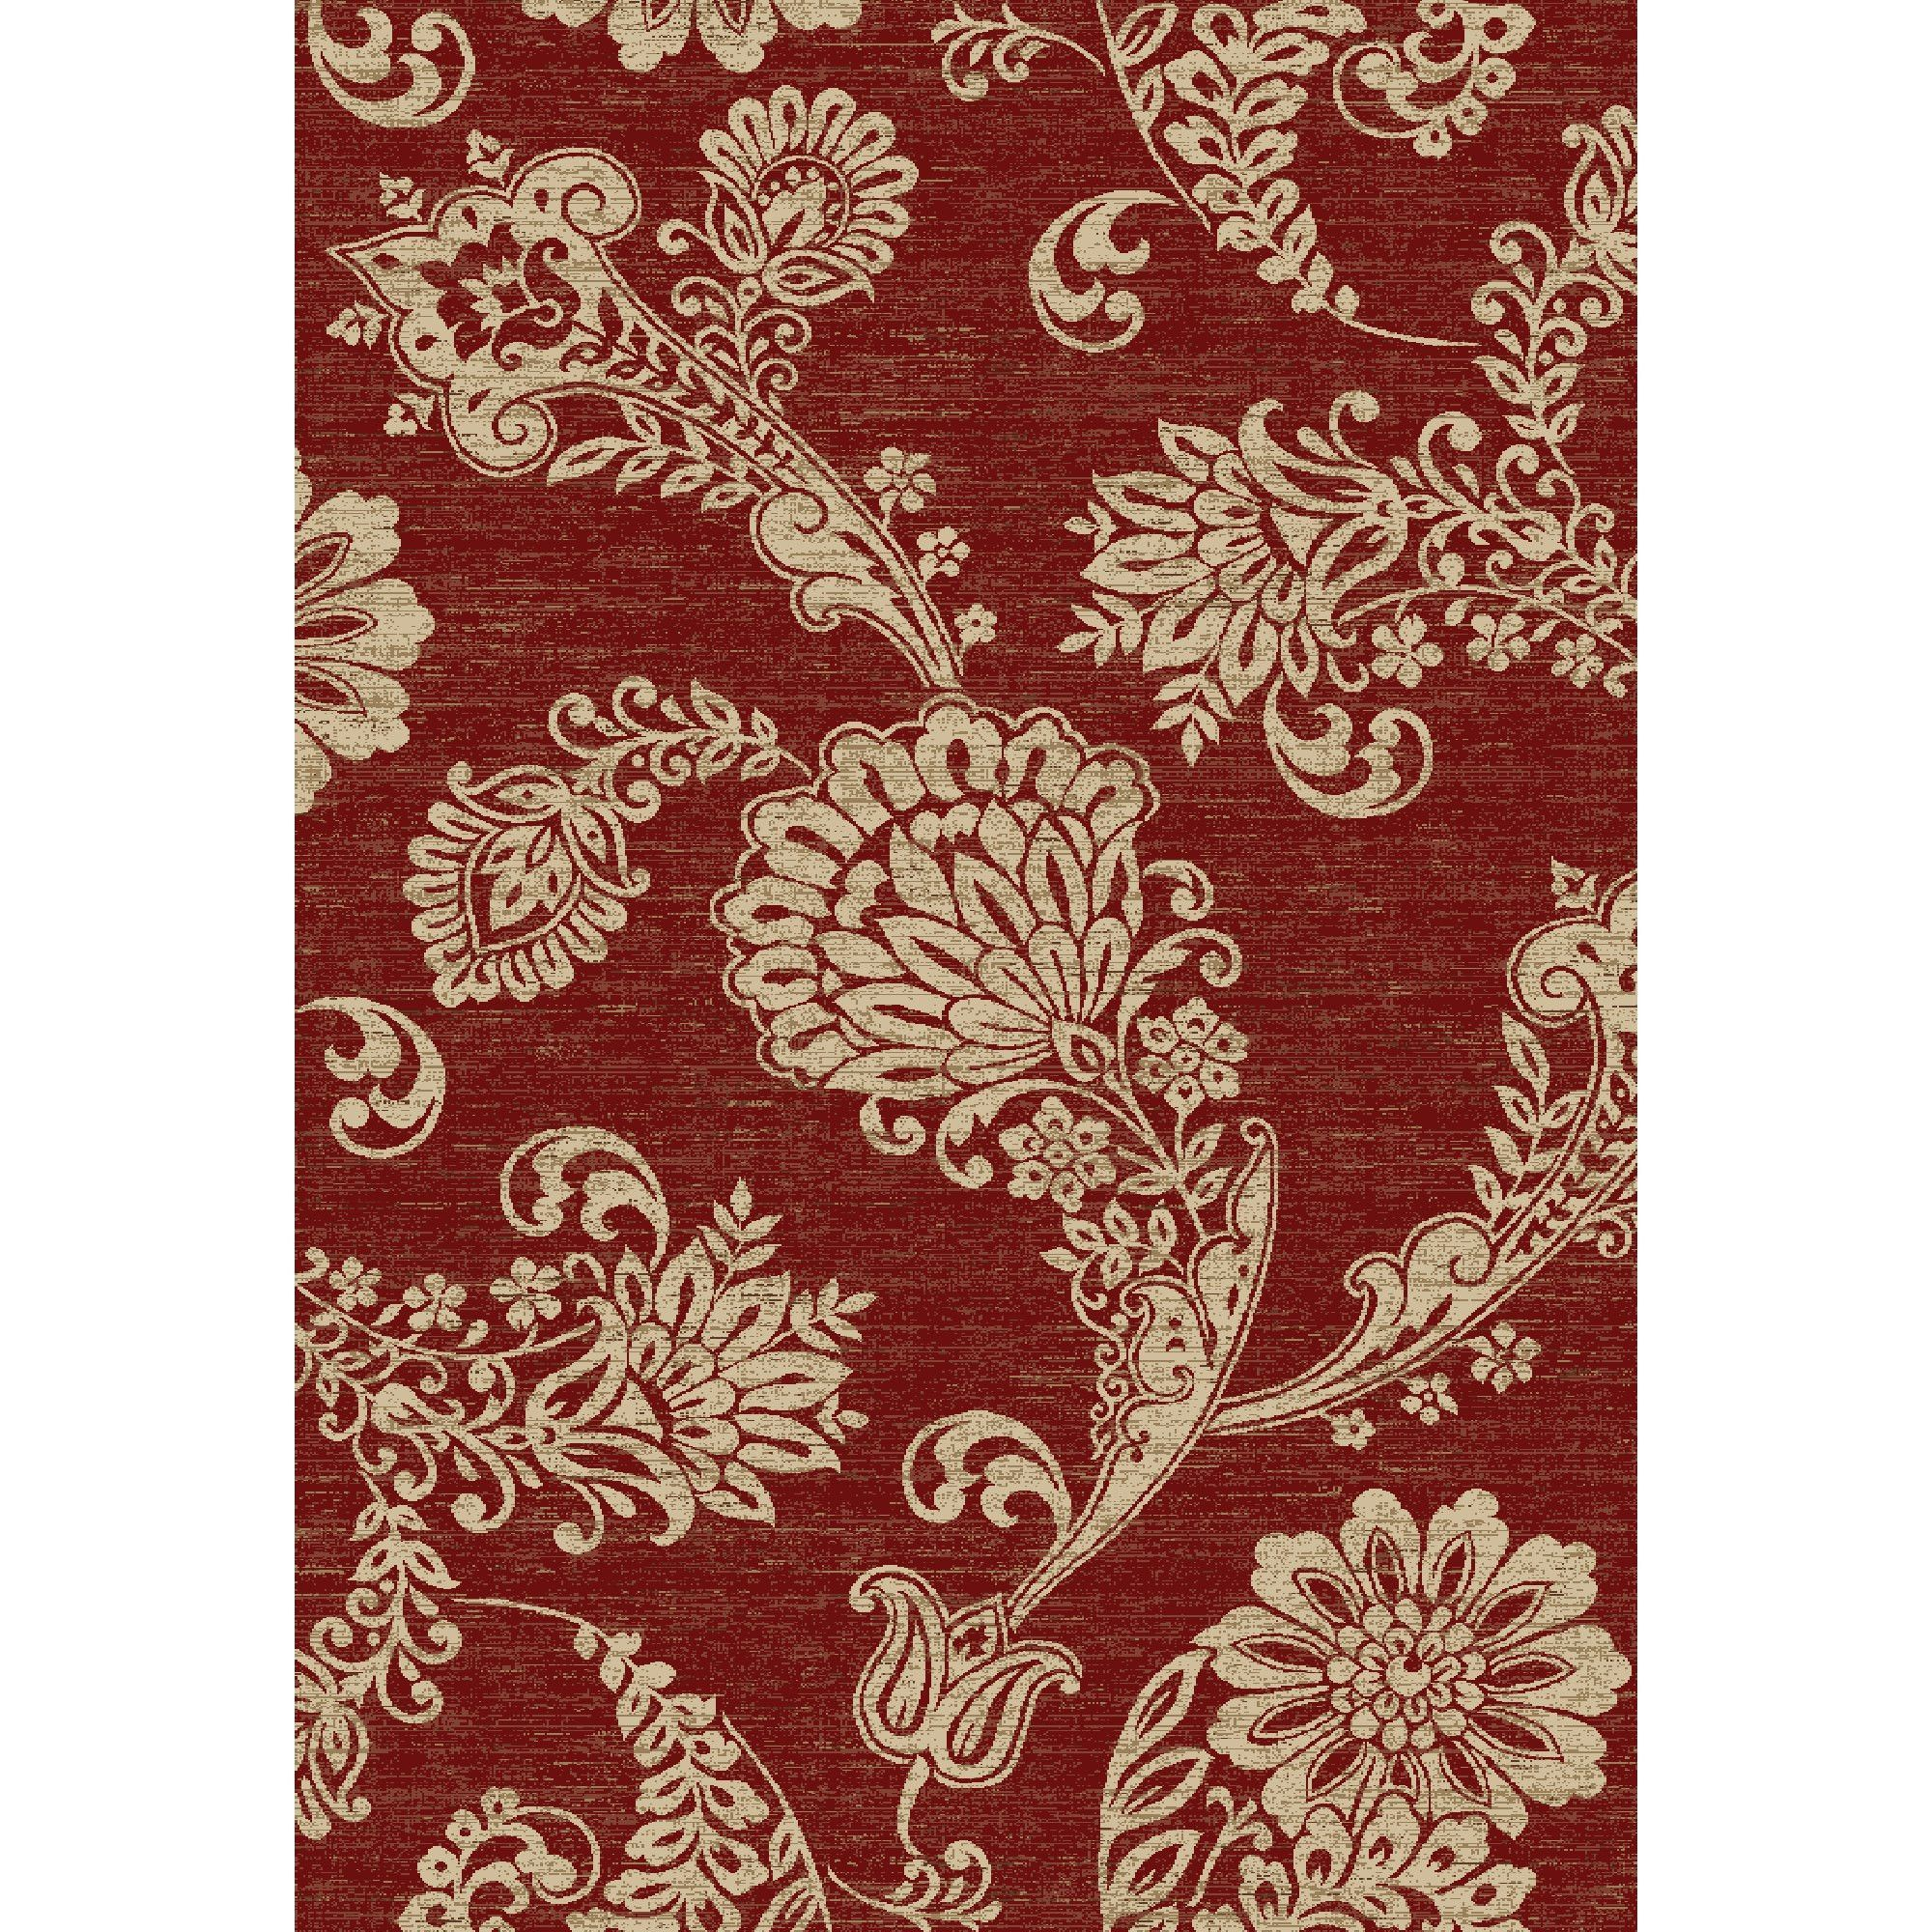 Concord Global Trading Verona Paisley Flower Red Area Rug